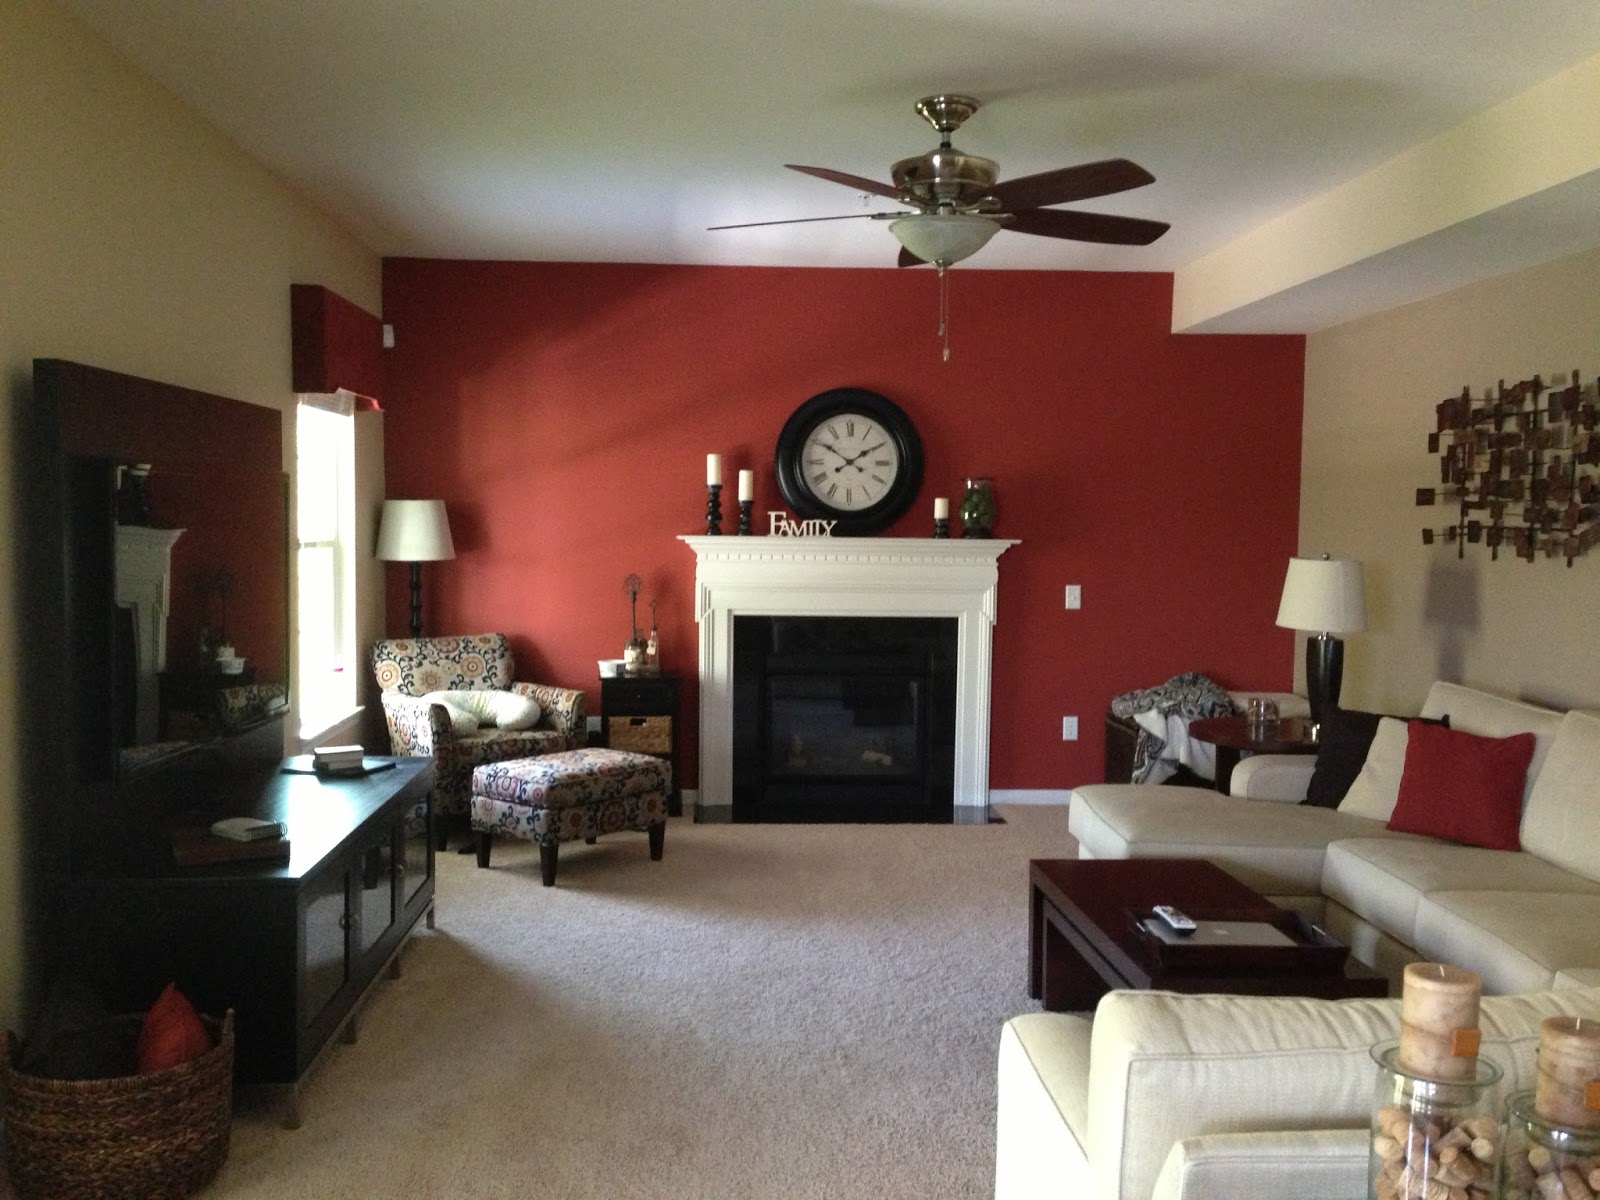 C.B.I.D. HOME DECOR and DESIGN: RENEW WITH COLOR